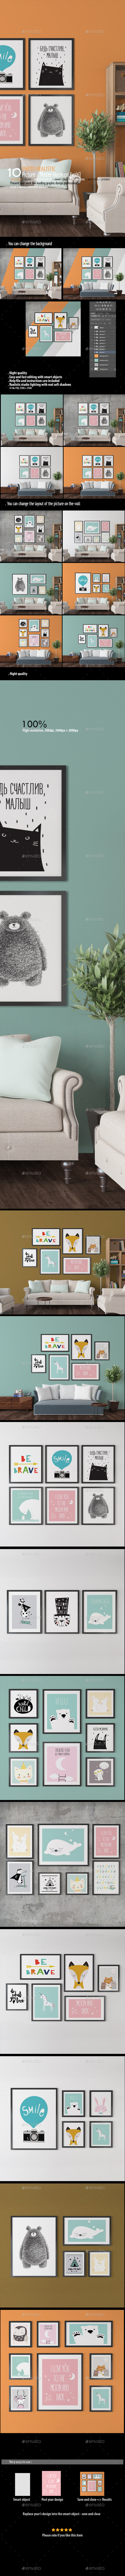 Picture / Poster Mockups [vol6] - Posters Print